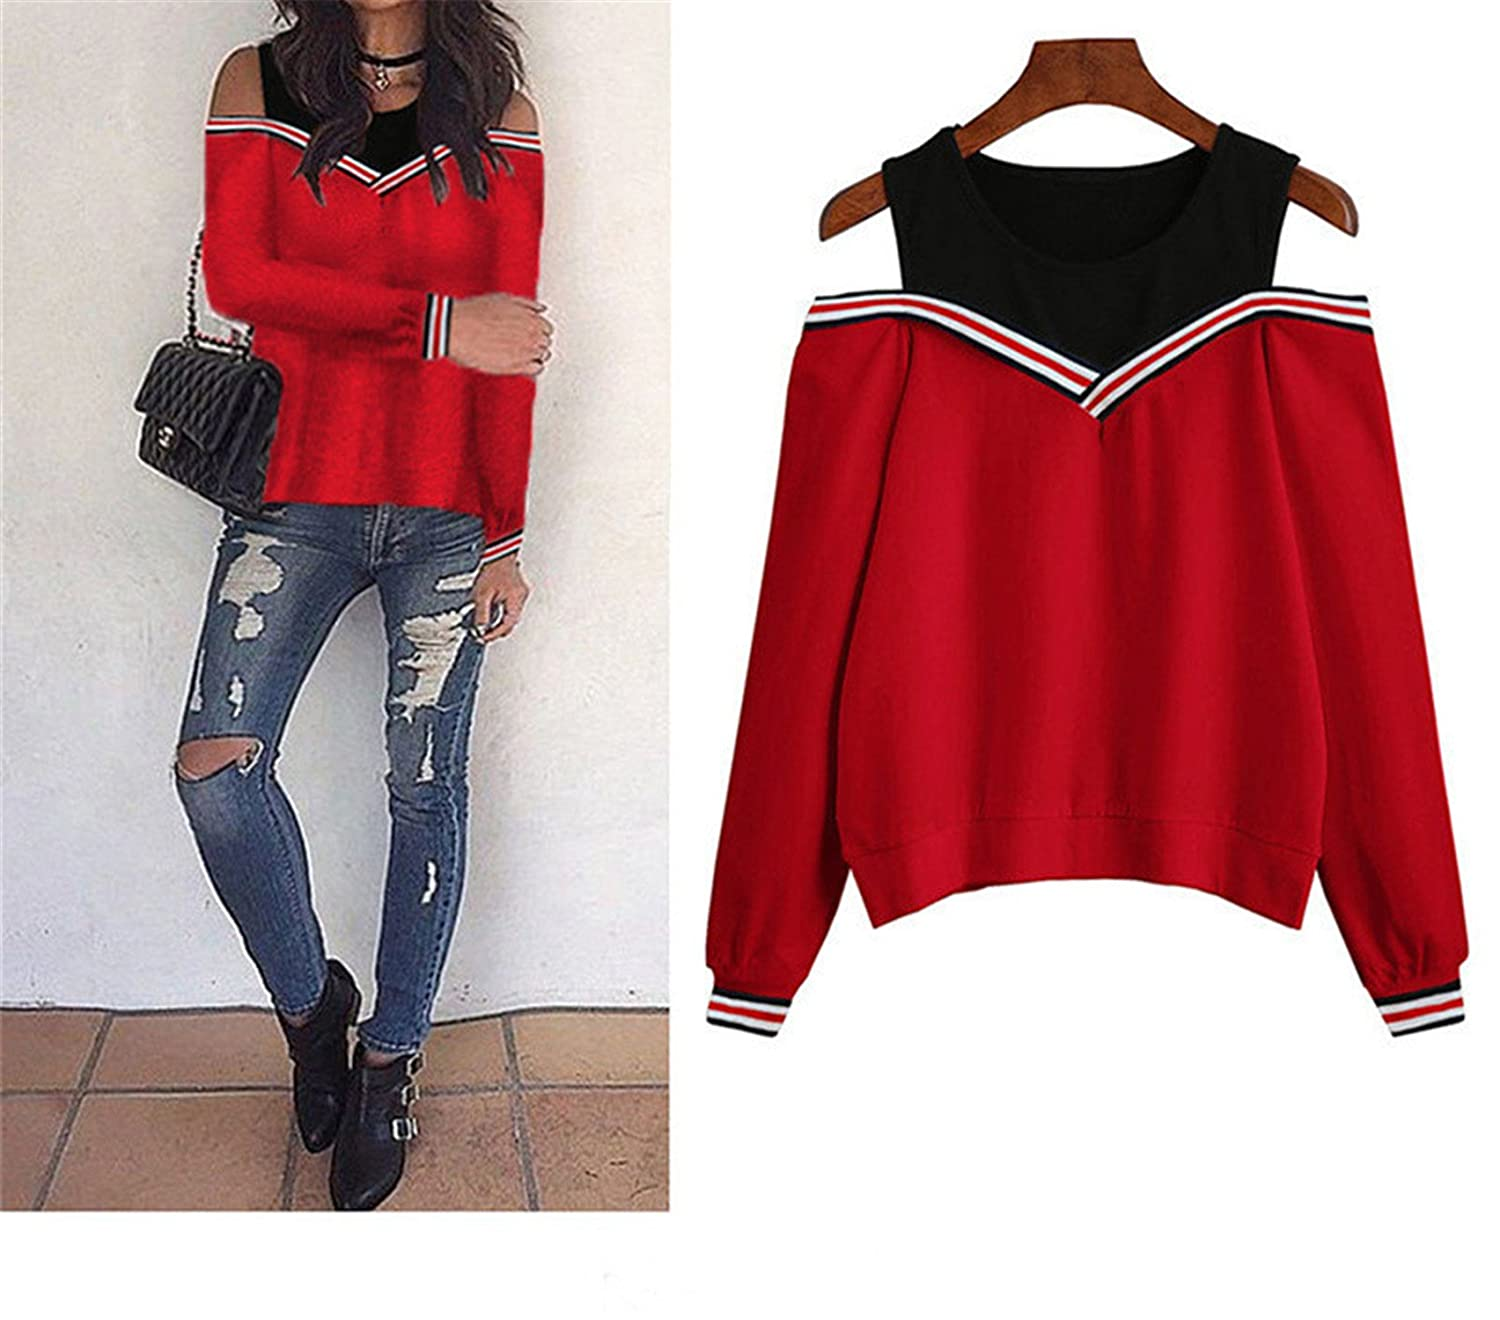 Kateirmaso Female Jumper Sweatshirt Off Shoulder Patchwork Hoodies Top Autumn Winter Neck Pullovers Tracksuit Ladies Tops at Amazon Womens Clothing store: